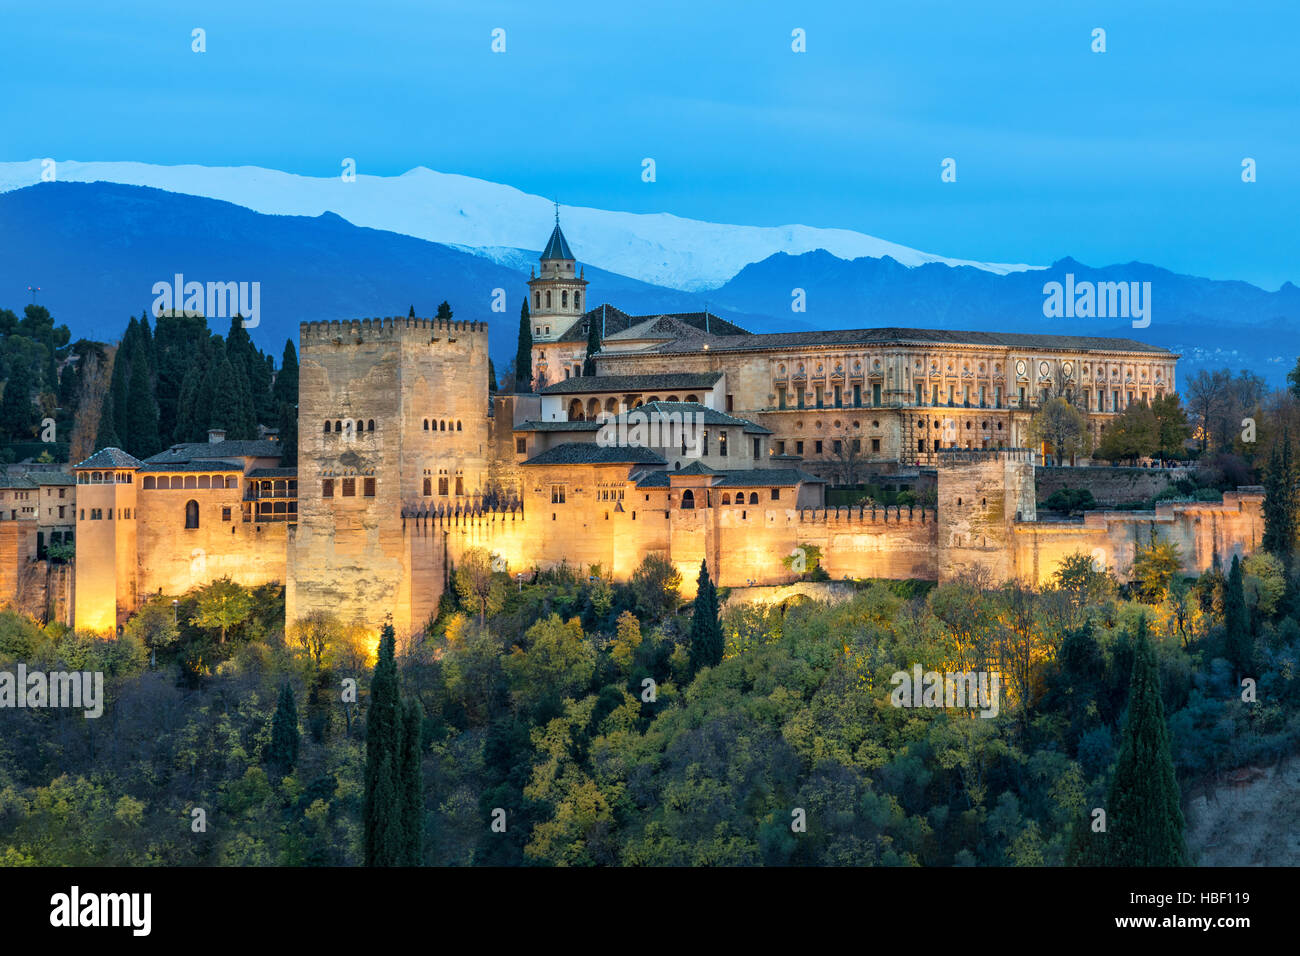 Alhambra - medieval Moorish fortress surrounded by yellow autumn trees illuminated in the evening, Granada, Andalusia, - Stock Image